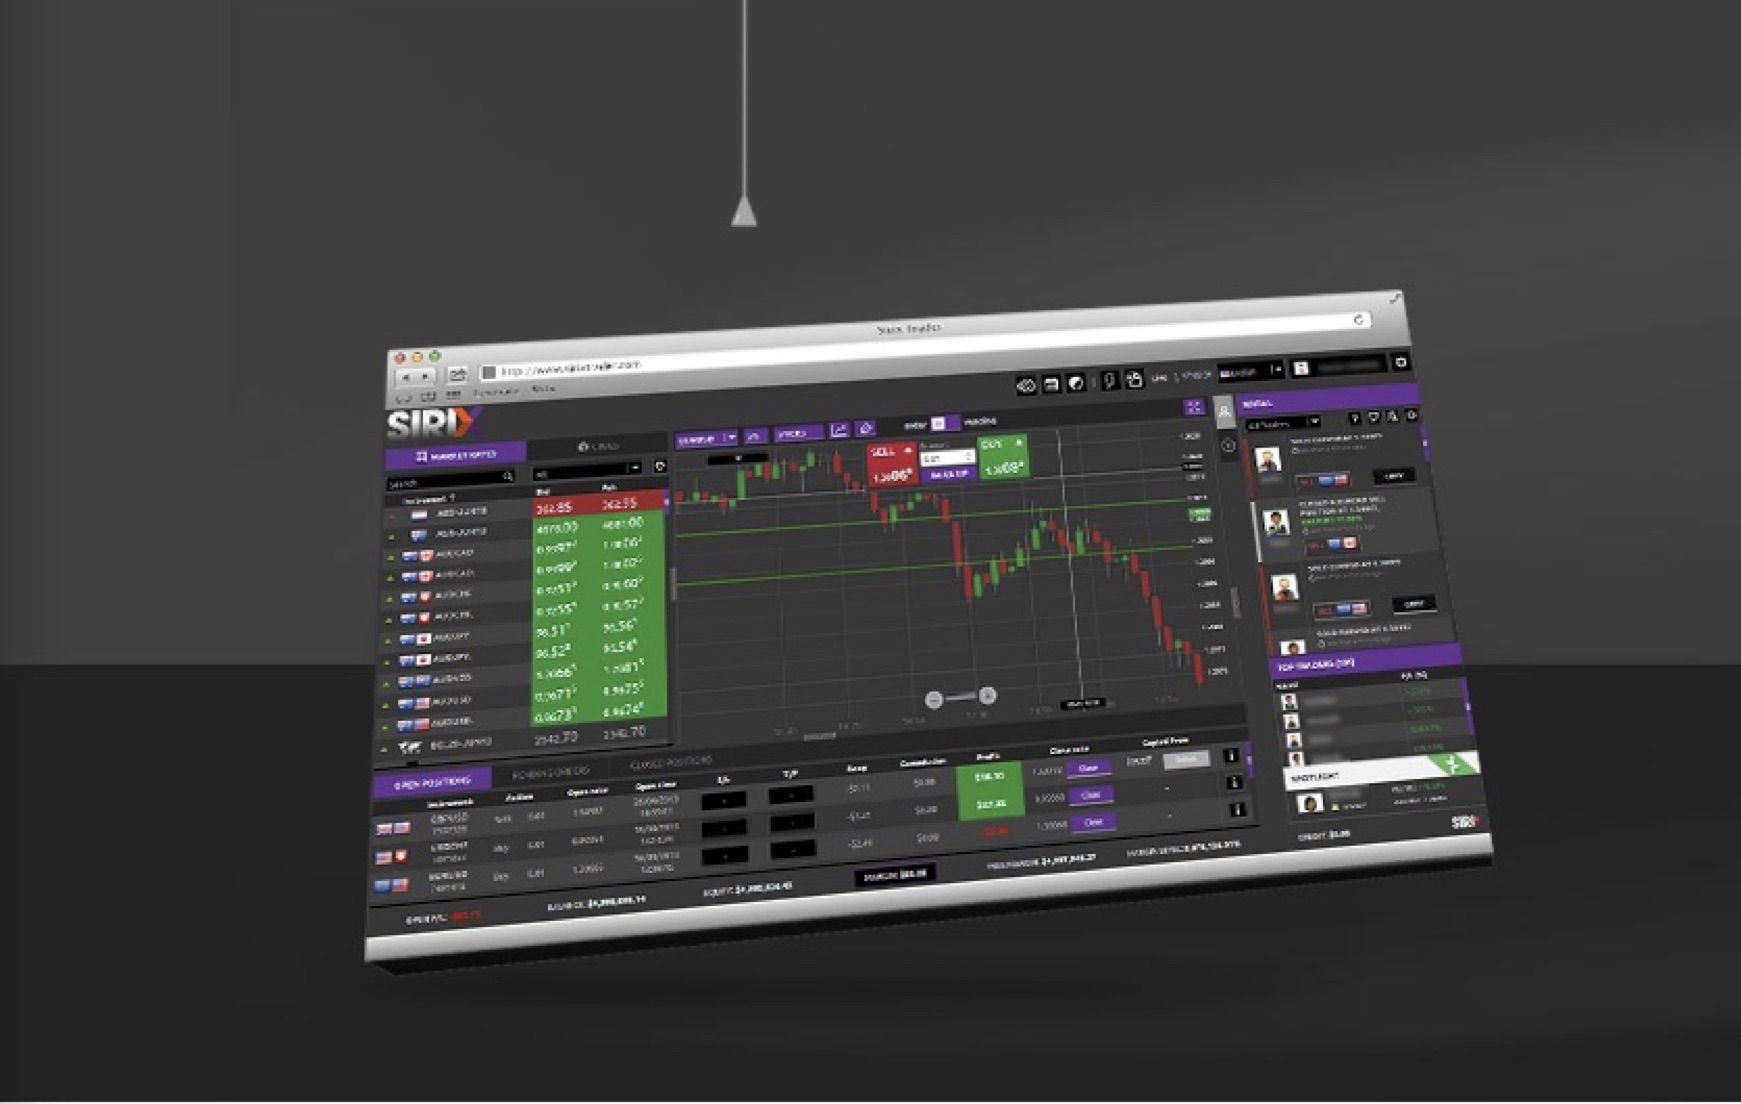 Top 5 Forex Brokers Using Sirix If You Are Not Familiar With